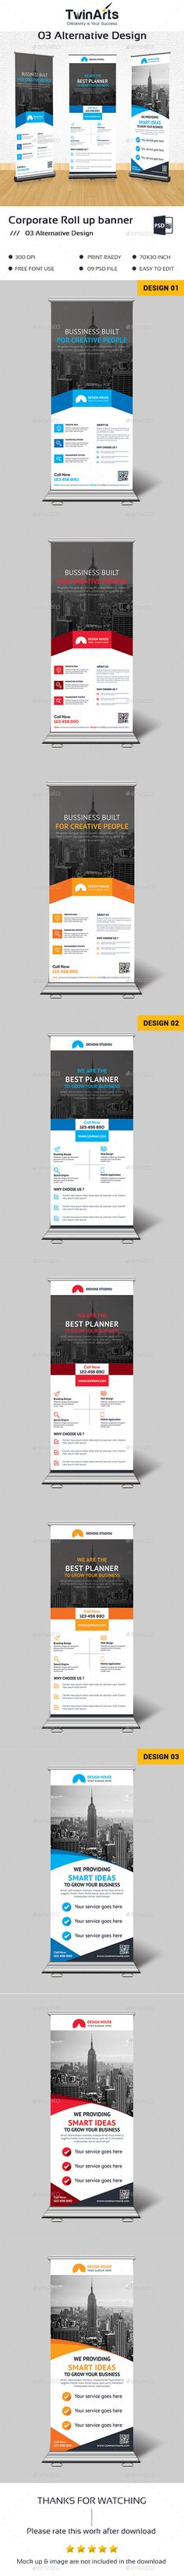 Corporate Roll-Up Banner Template PSD. Download here: https://graphicriver.net/item/corporate-roll-up-banner/17623450?ref=ksioks